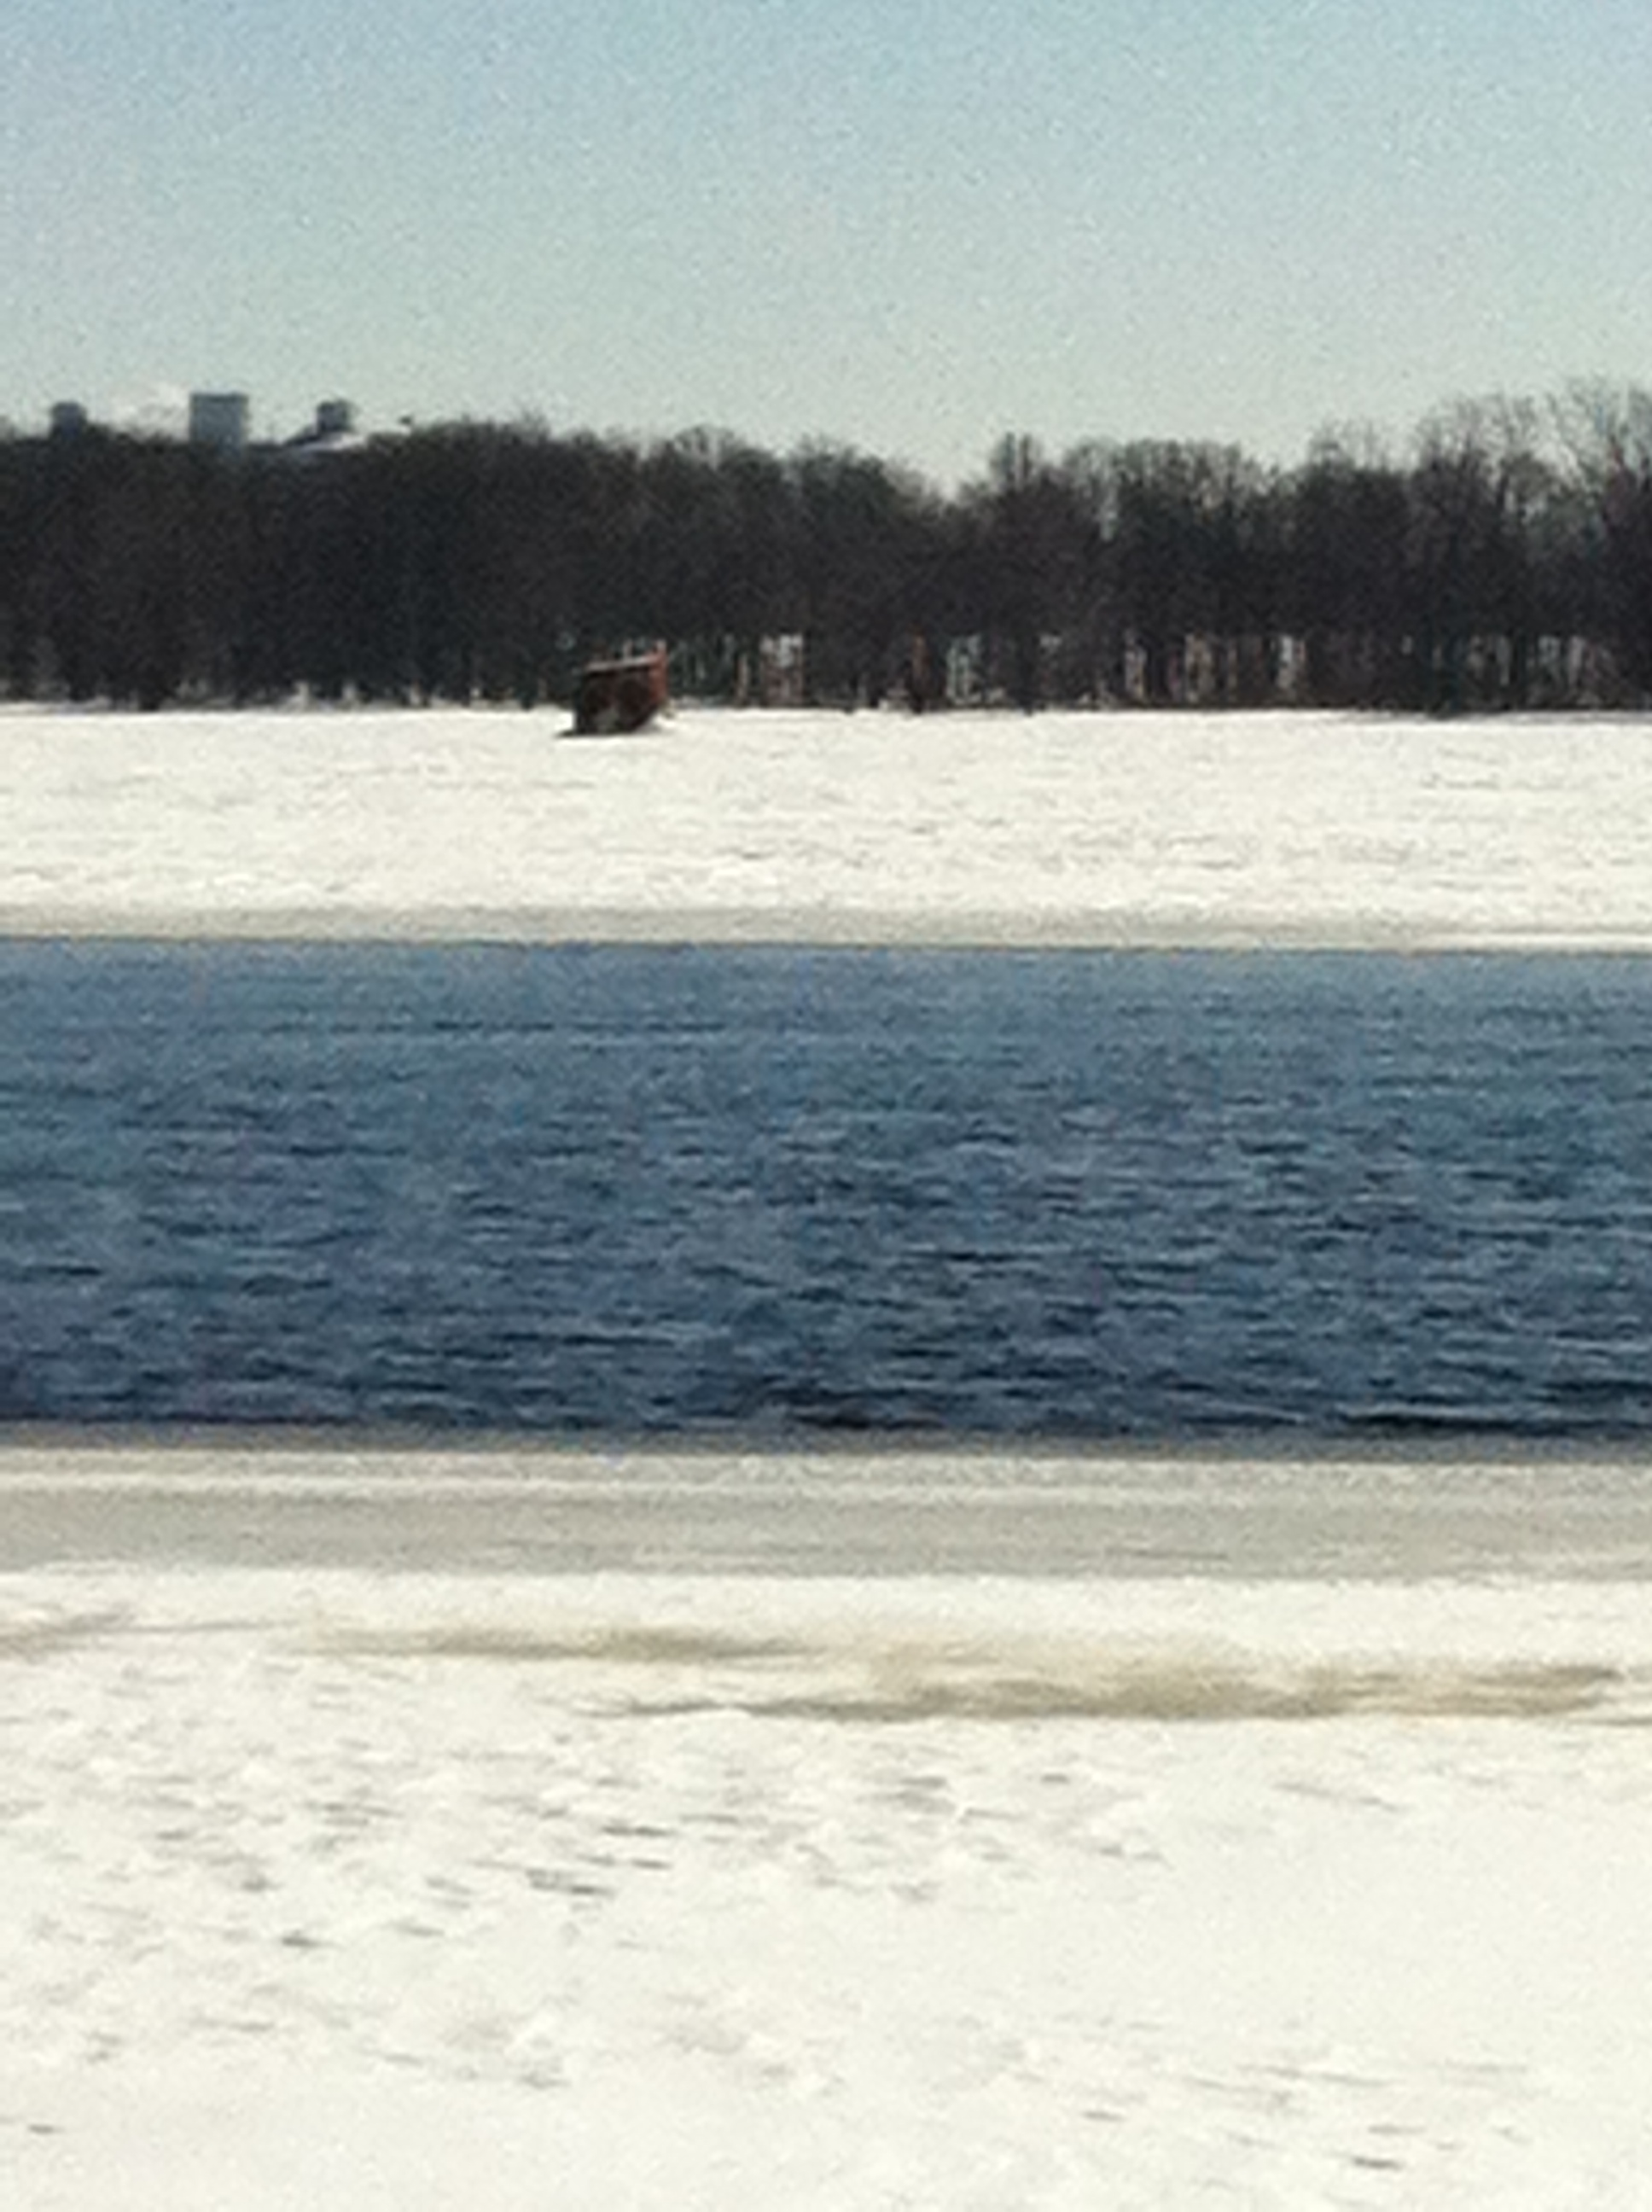 The beacon ruins, literally frozen in time, encased in ice on the Ottawa River. The neighbourhood of Beacon Hill, which got its name from this very lighthouse, is in the background.